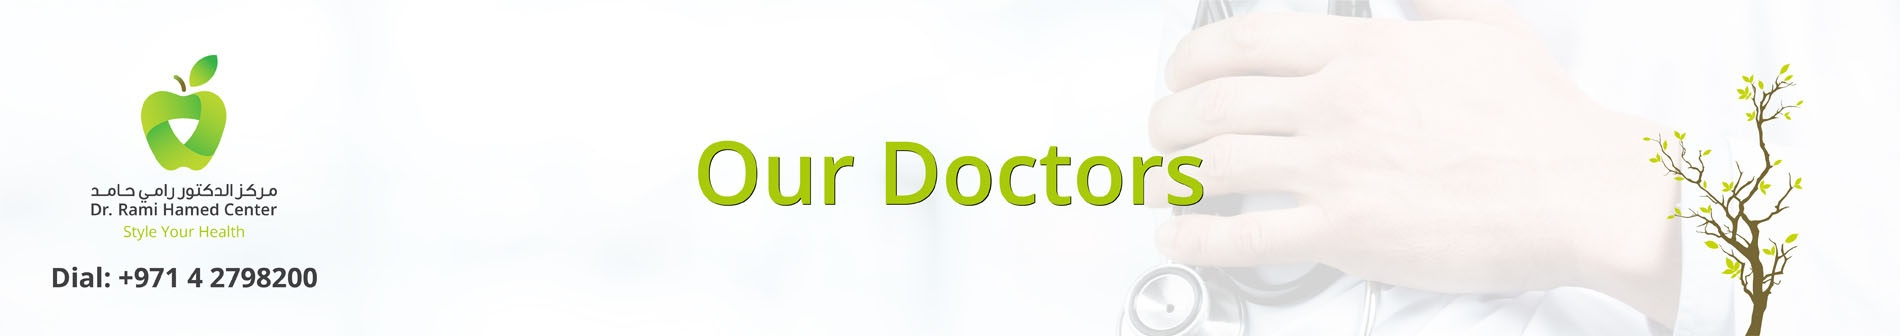 Our Doctors - Medical Center in Dubai